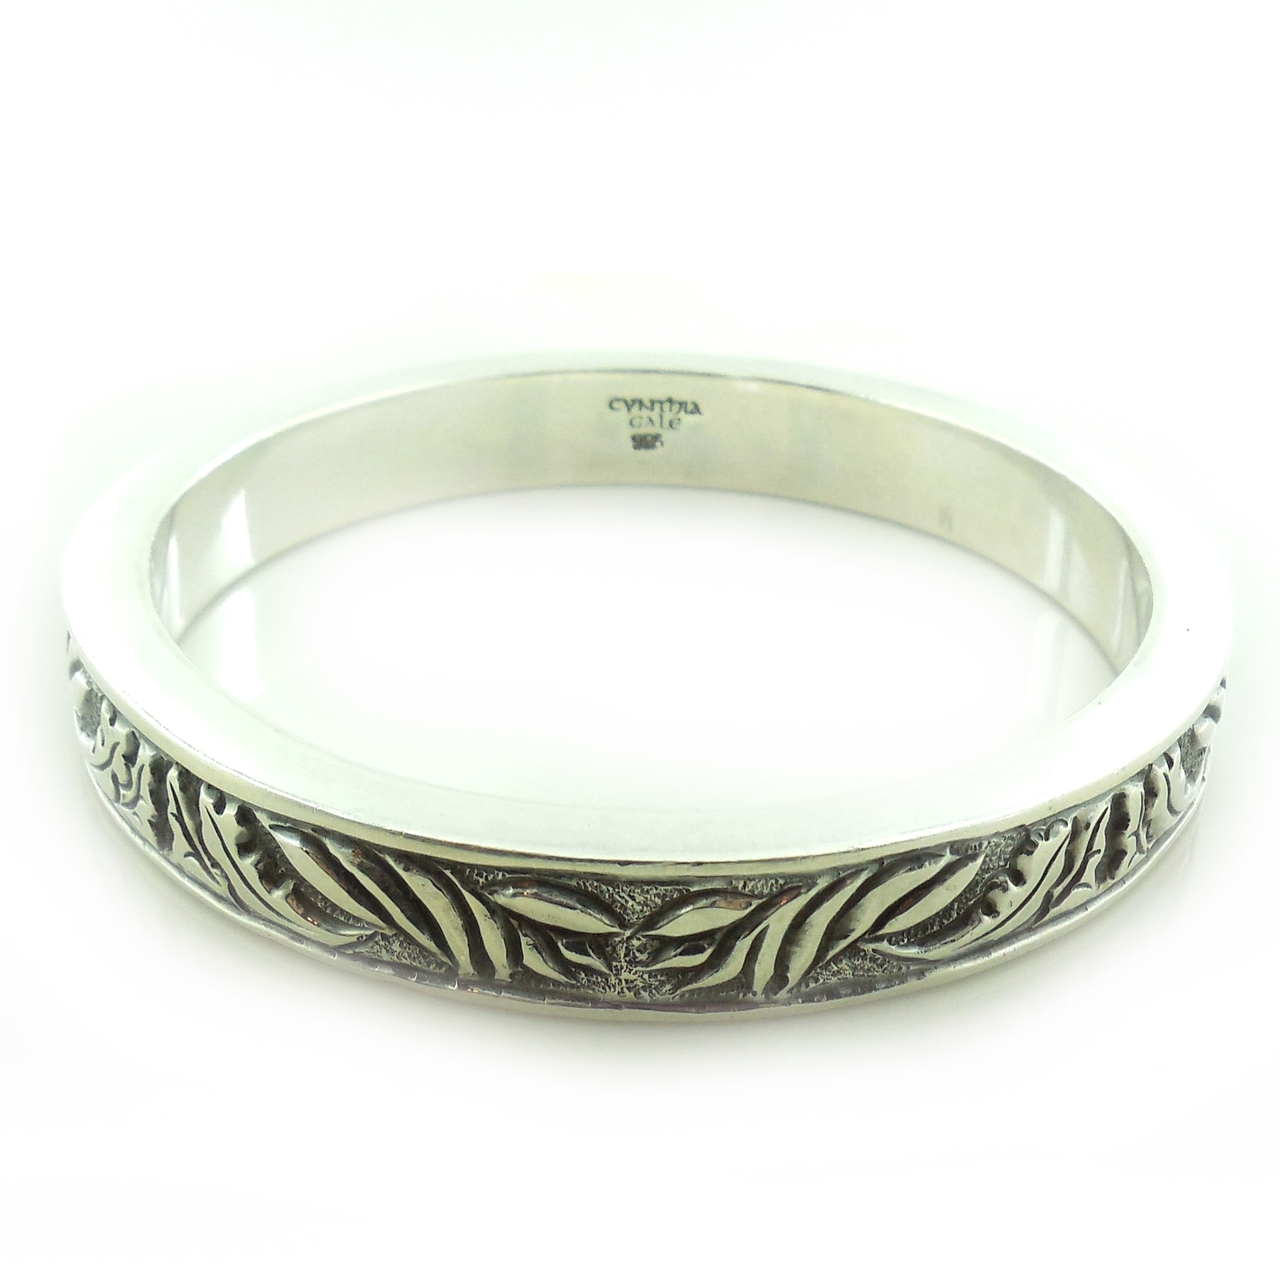 Cynthia Gale Sterling Silver Artistic Impression Geo Art Bangle Bracelet